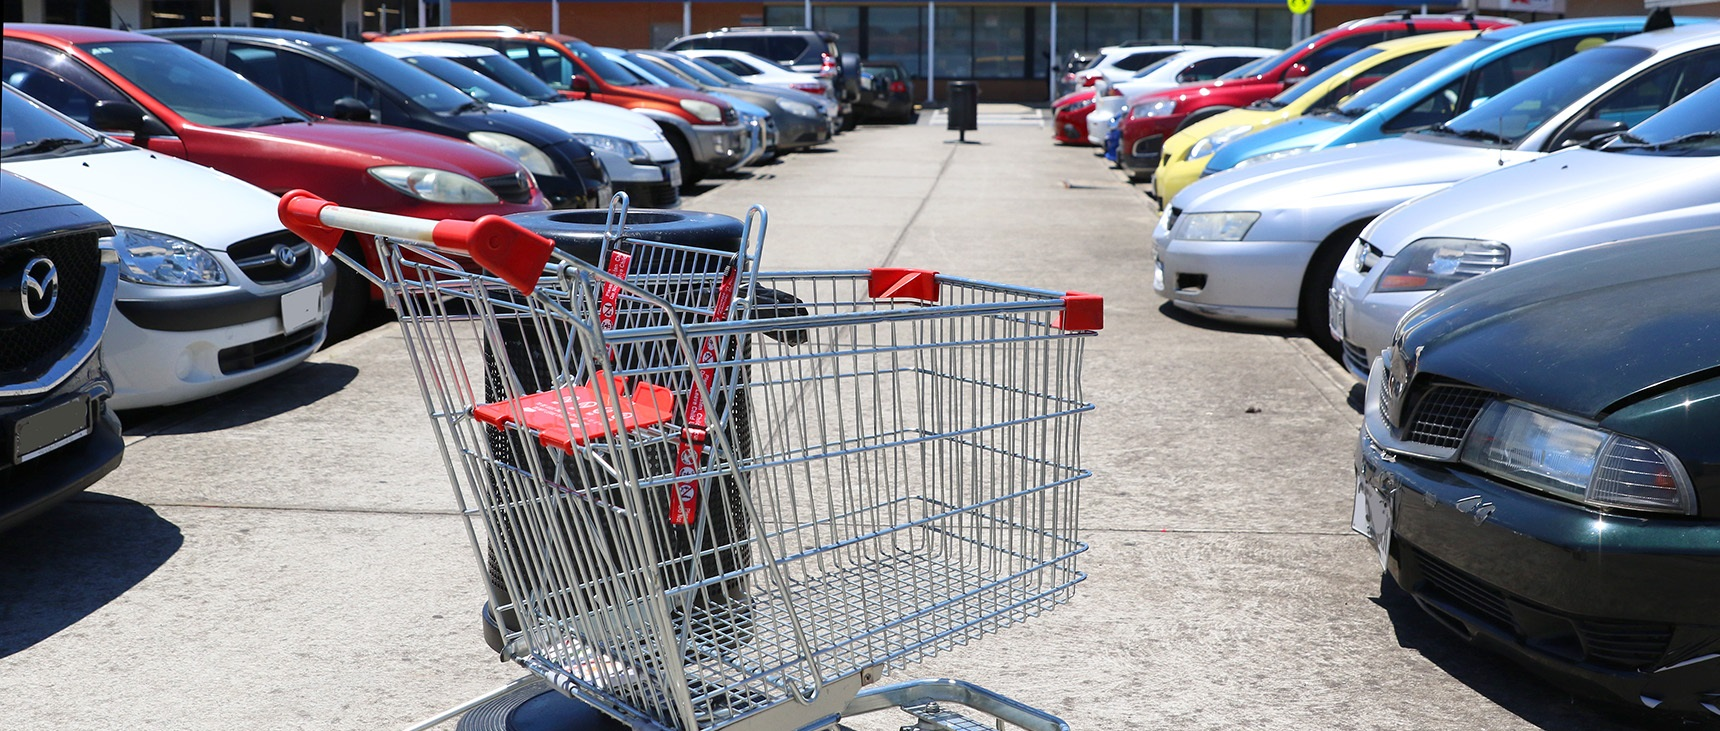 Don't dump your trolley. Image: Getty